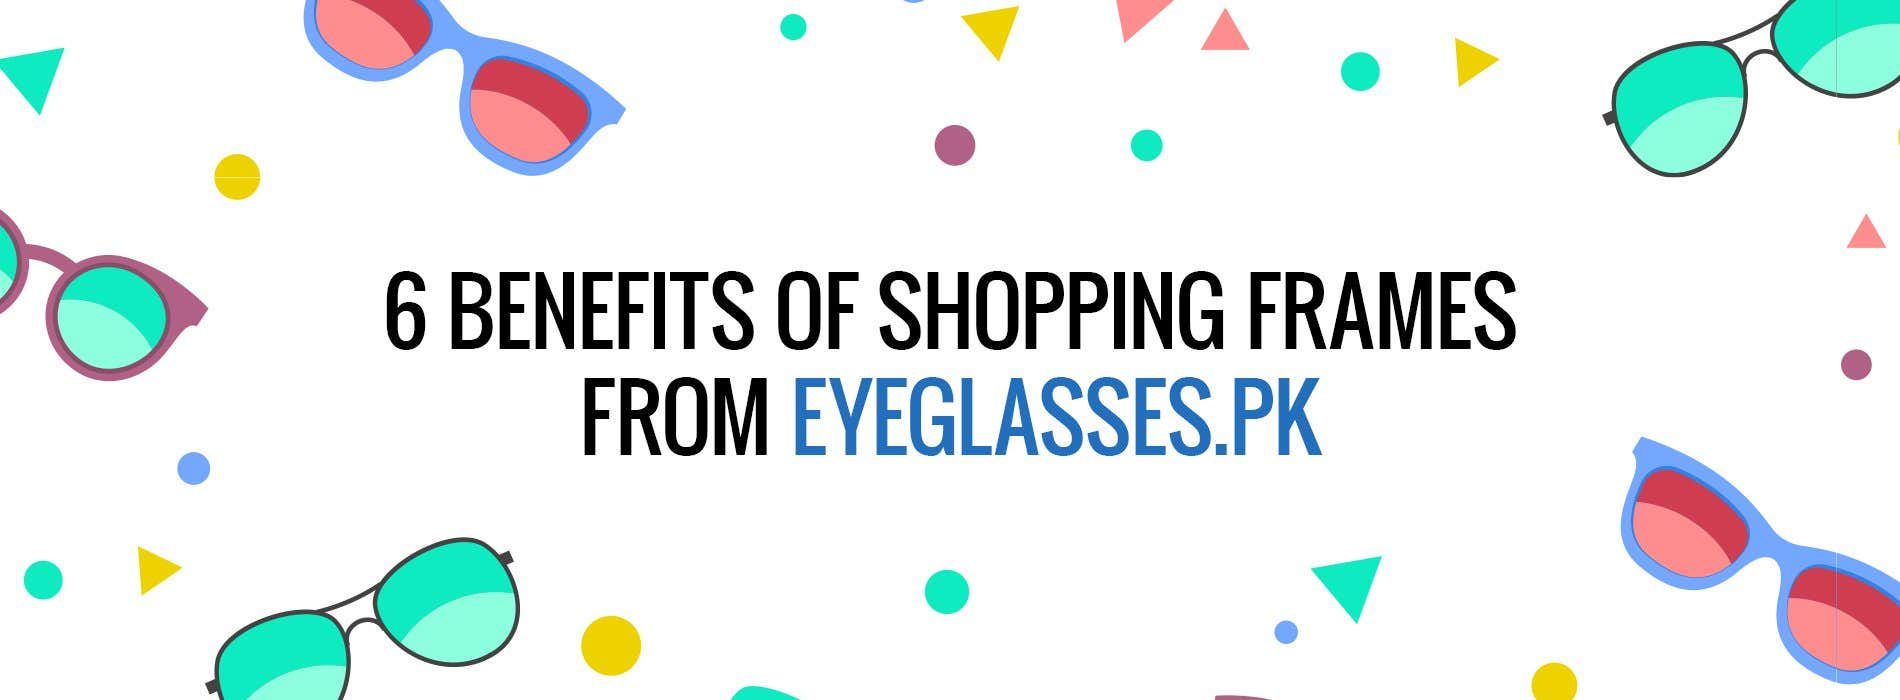 3 - 6 BENEFITS OF SHOPPING FRAMES FROM EYEGLASSES PK